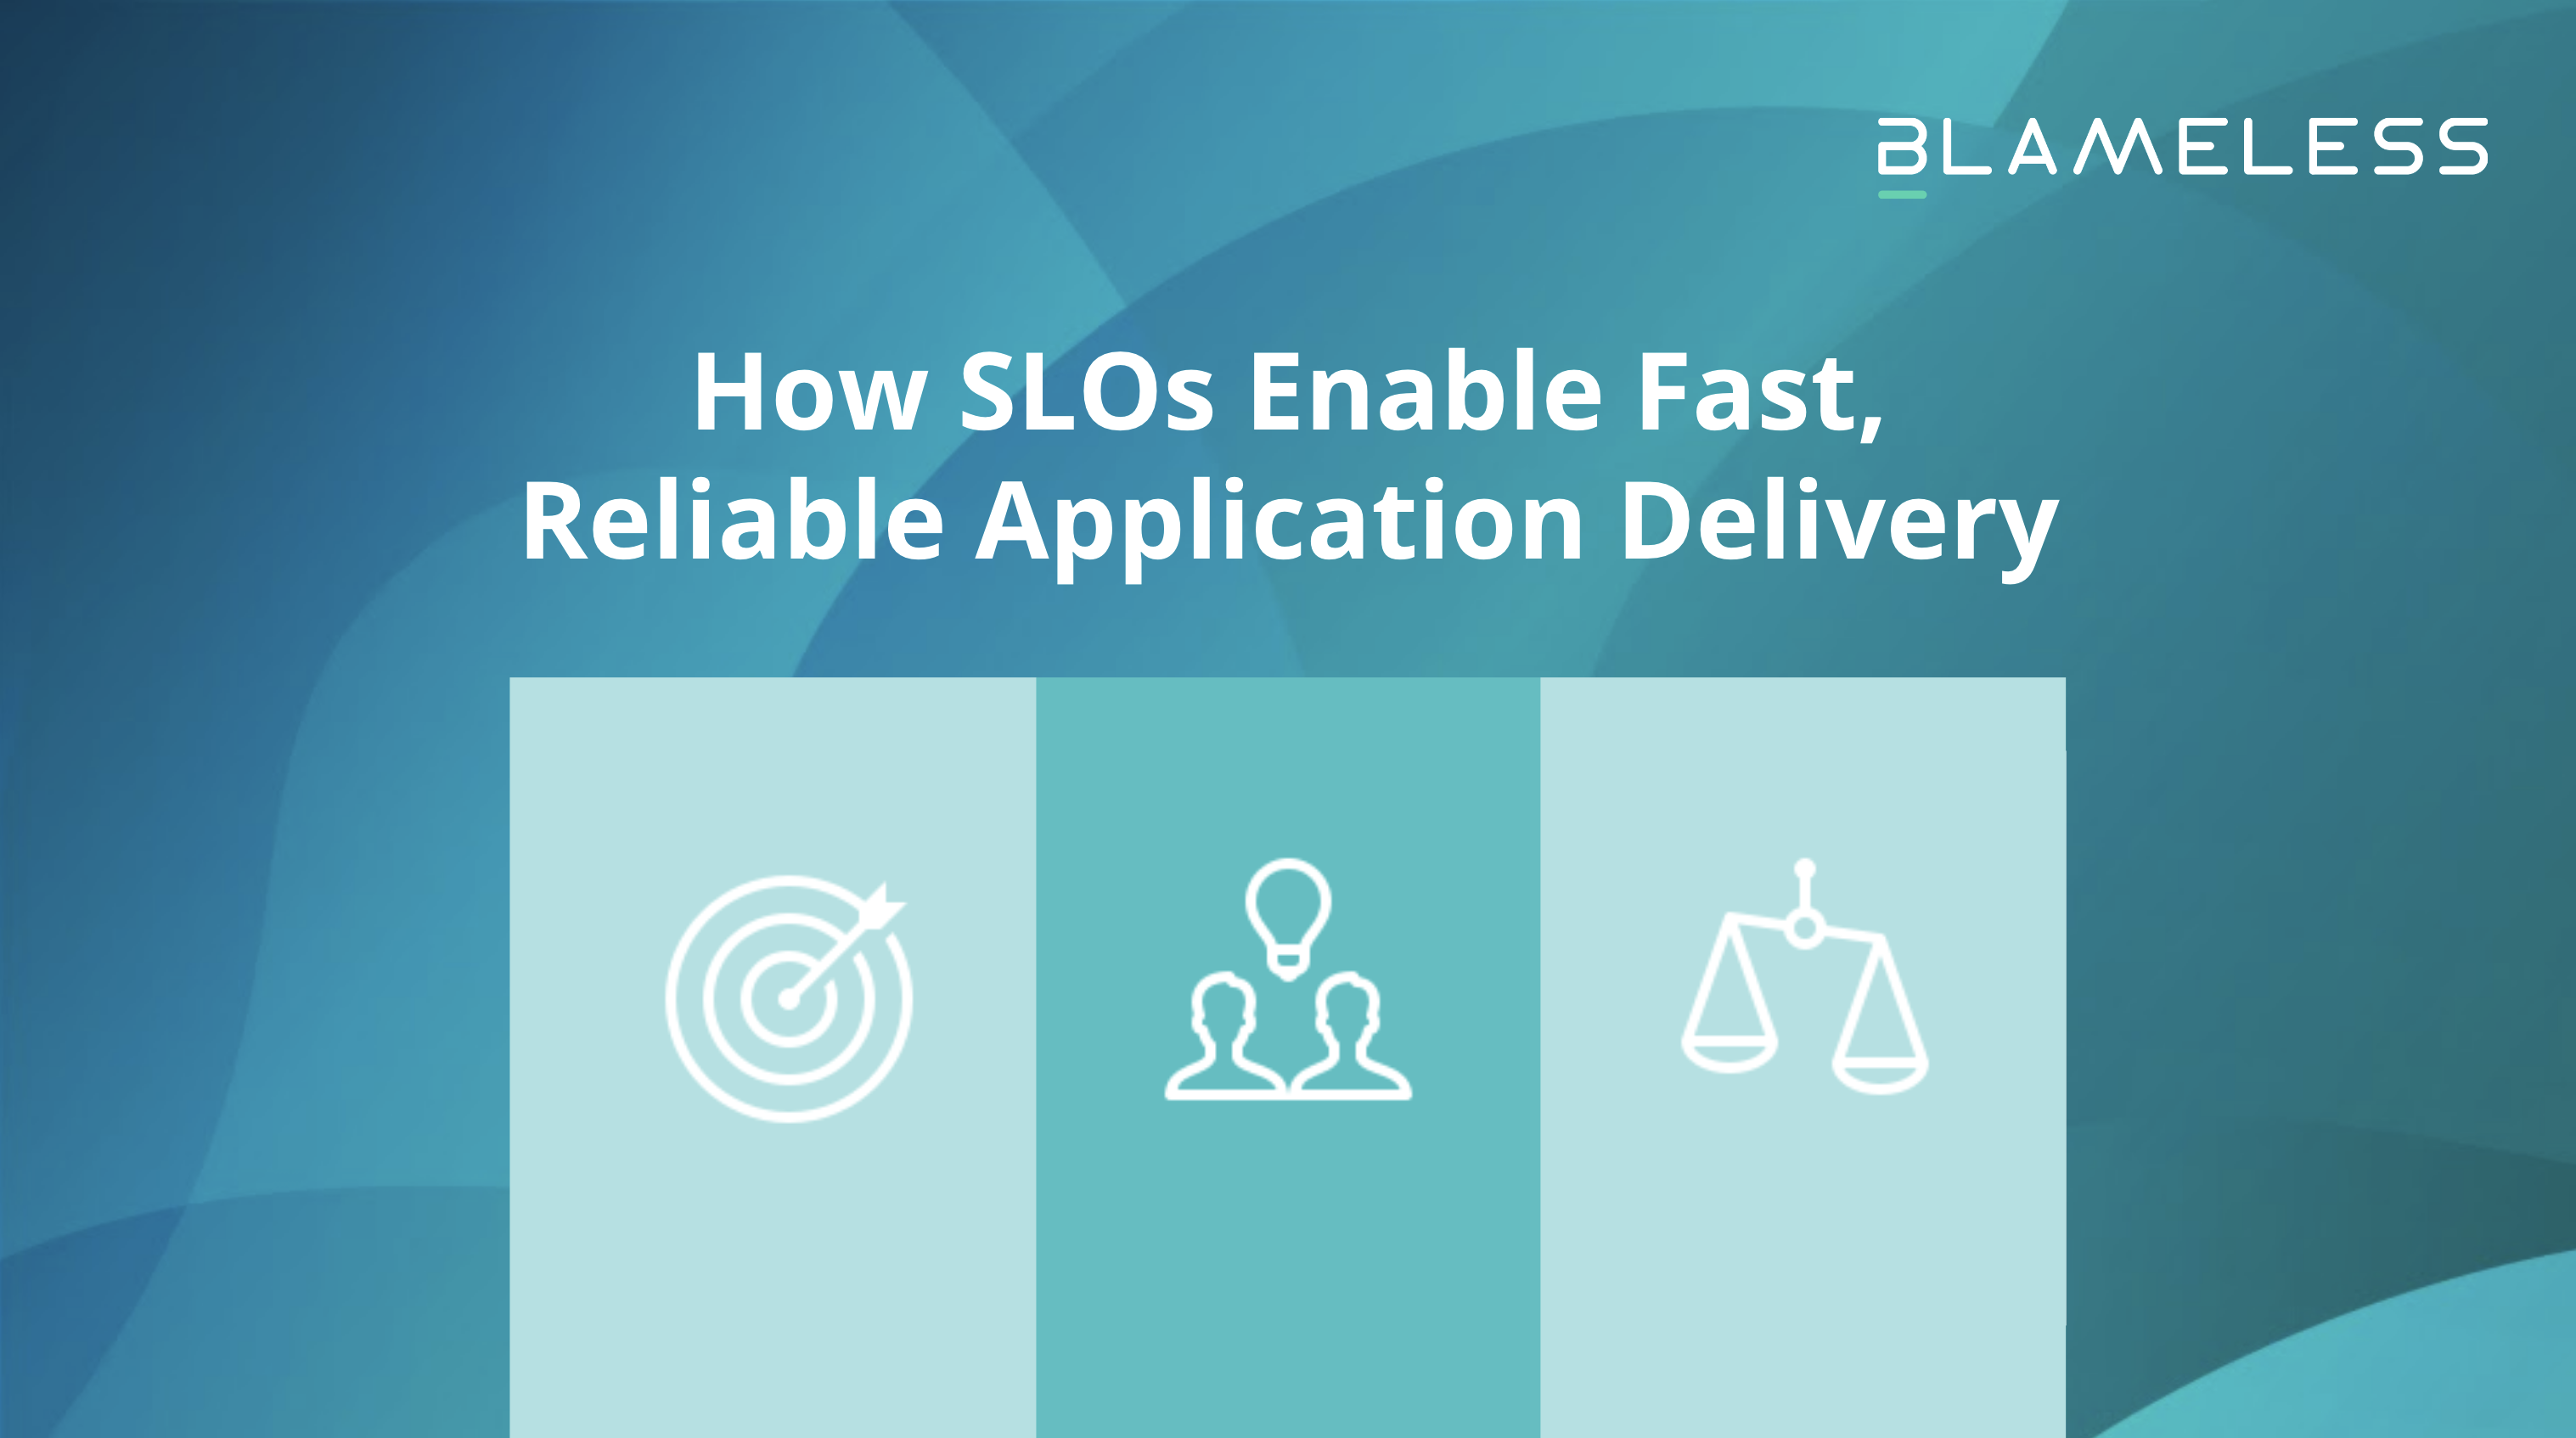 How SLOs Enable Fast, Reliable Application Delivery